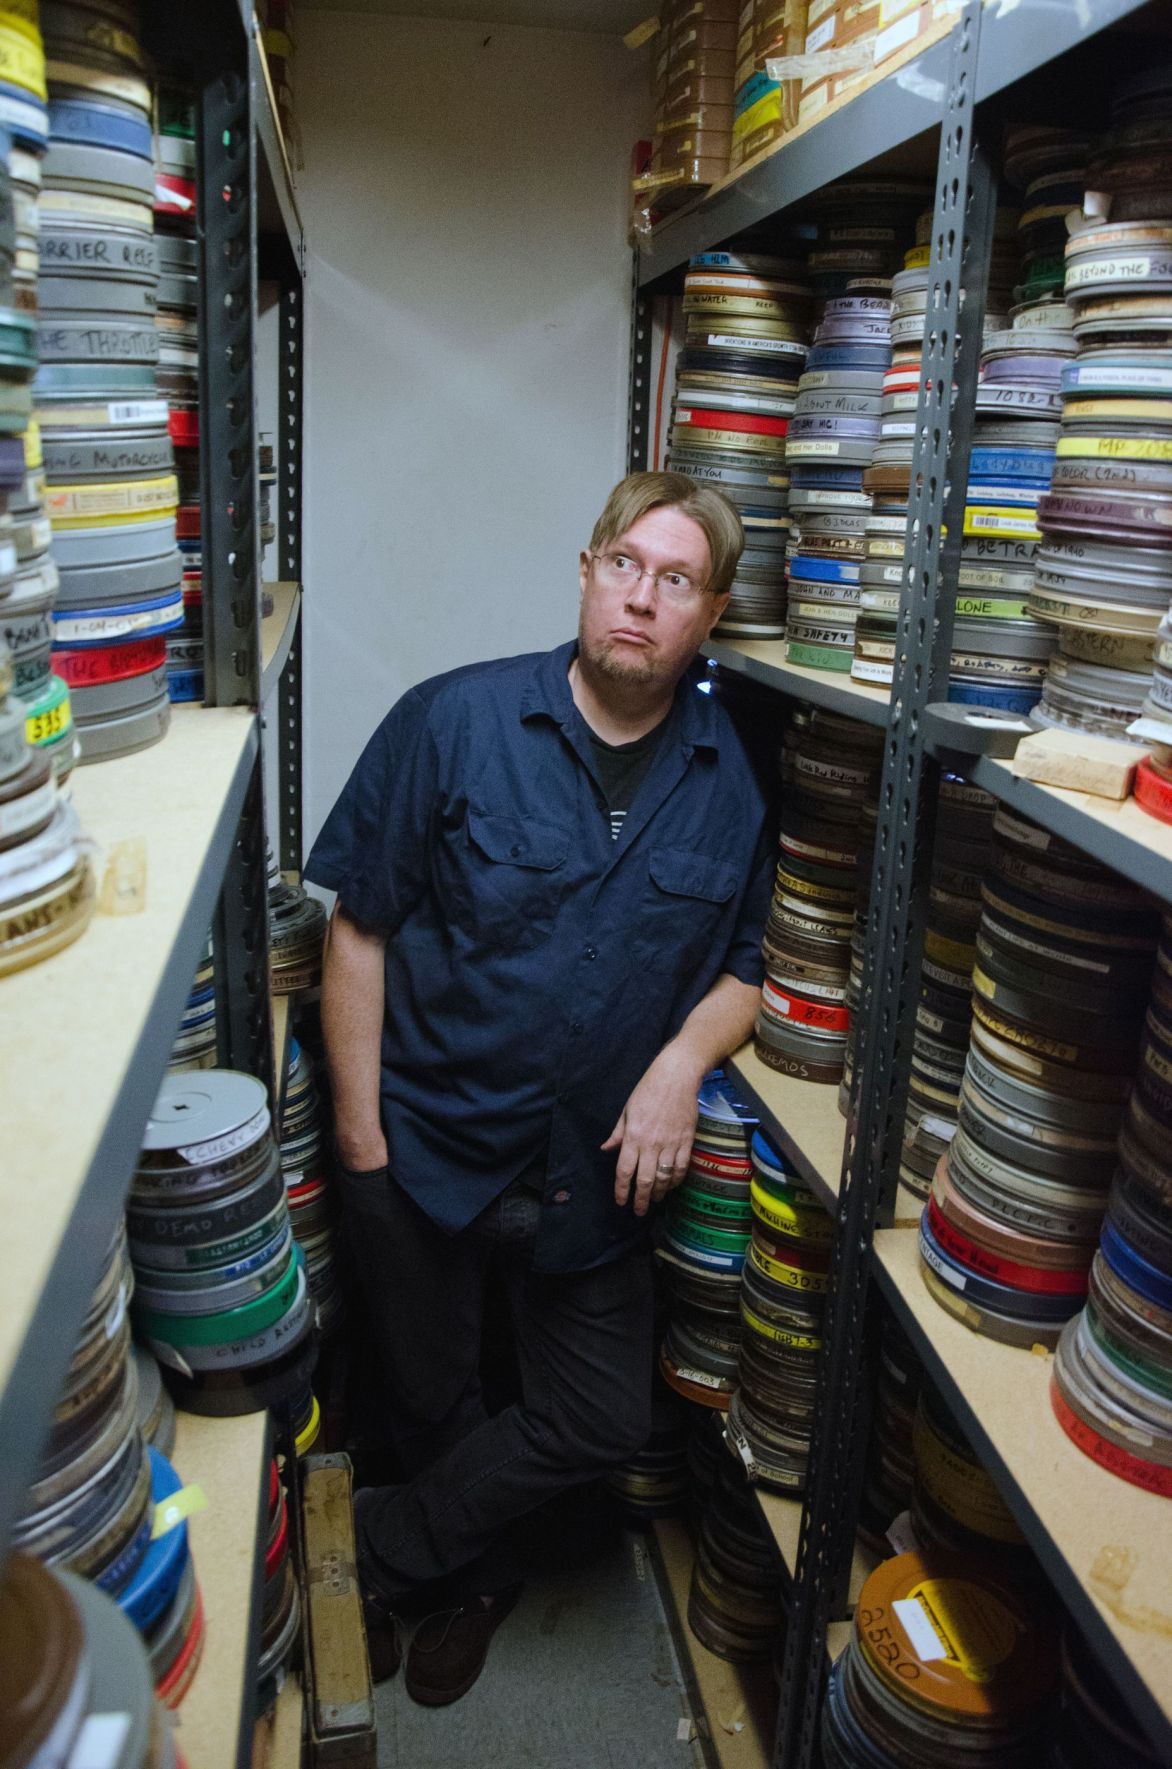 Film curator to screen vintage educational films at Charleston Music Hall